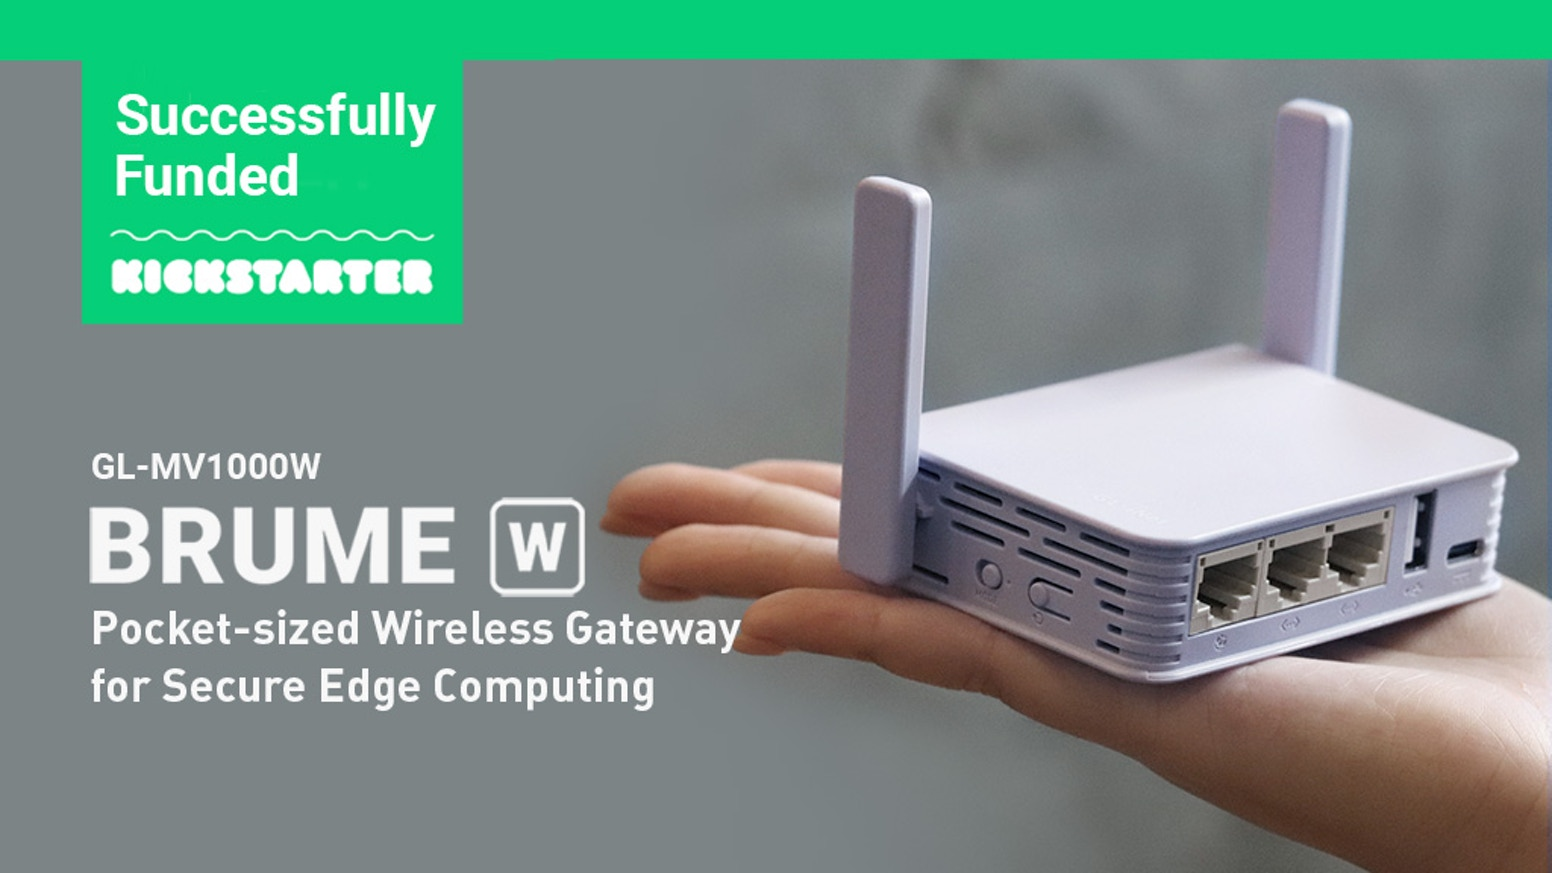 The portable edge computing gateway with secure VPN cryptography technology, now with a built-in WiFi Module.